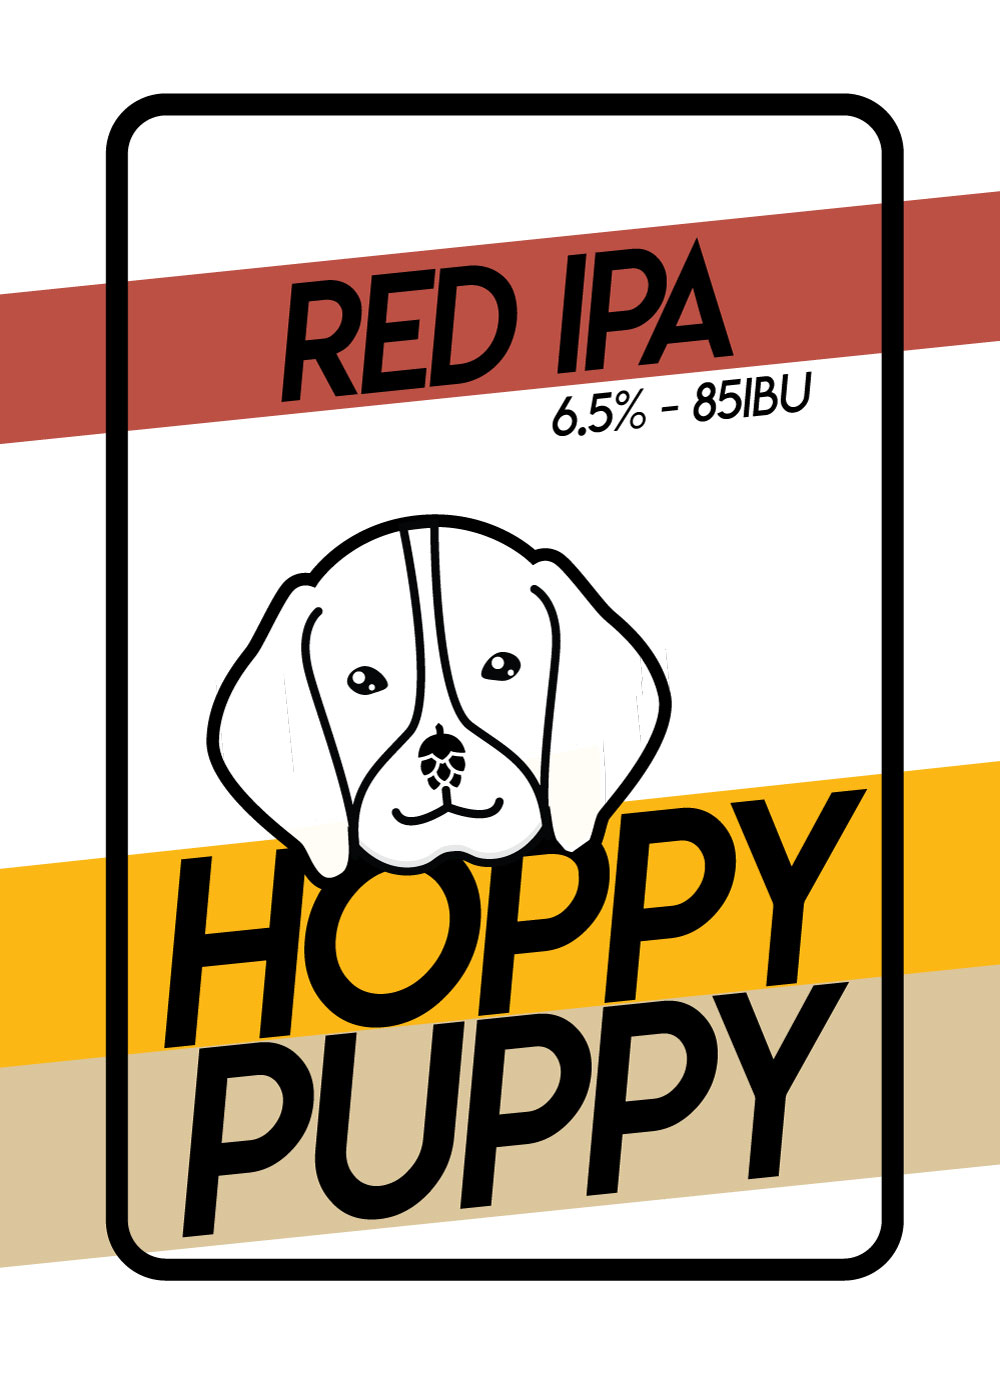 RED-IPA - Copy.jpg